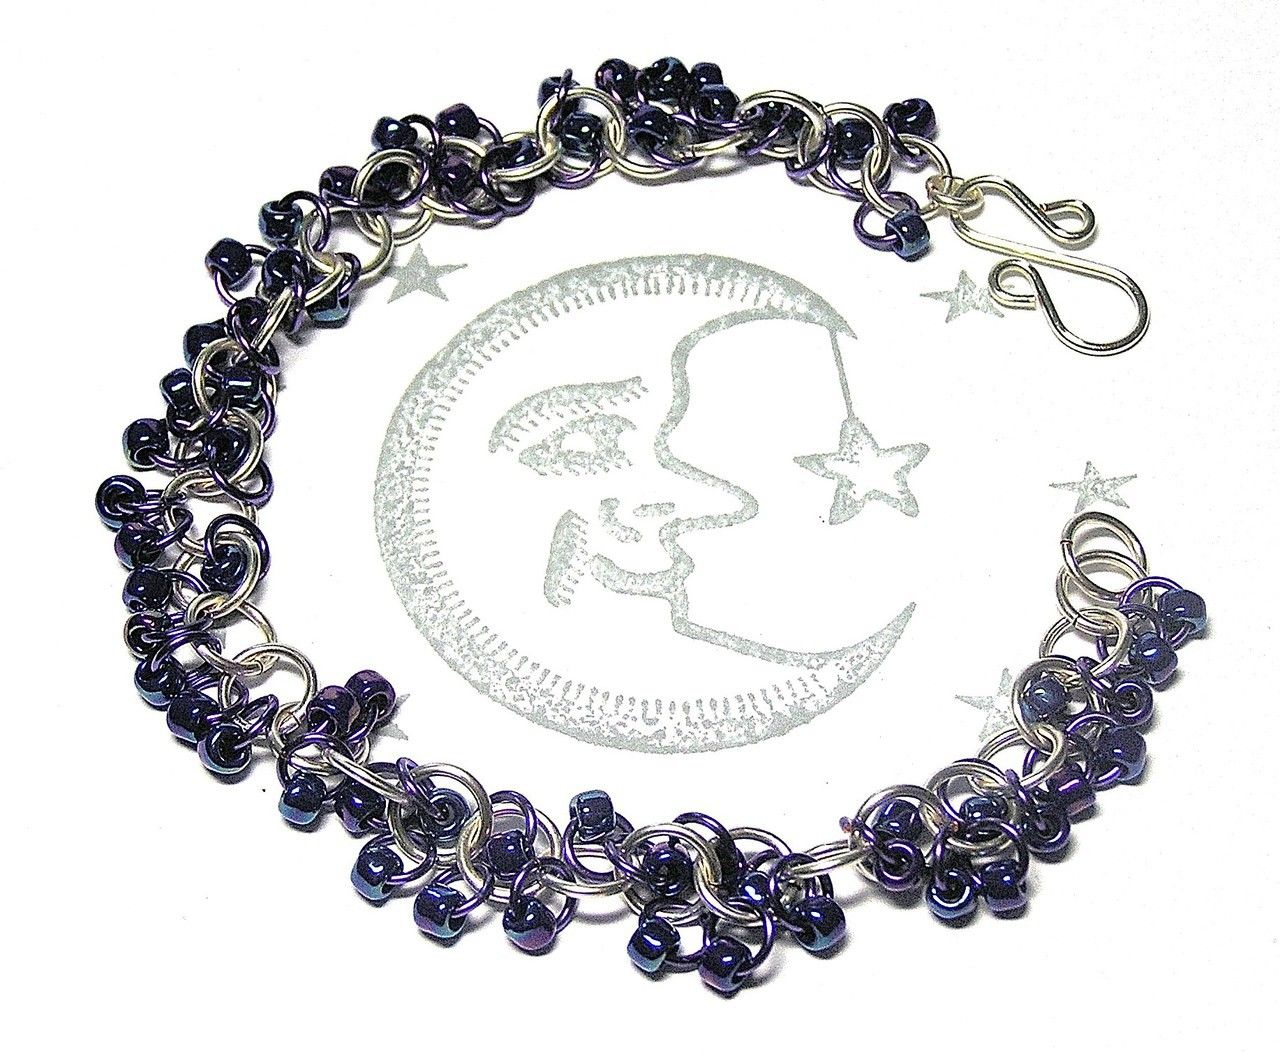 Chainmaille Bracelet - Shaggy Loop Weave in Silver / Purple with Iridescent Blue / Purple Beads - Enchanted Moon